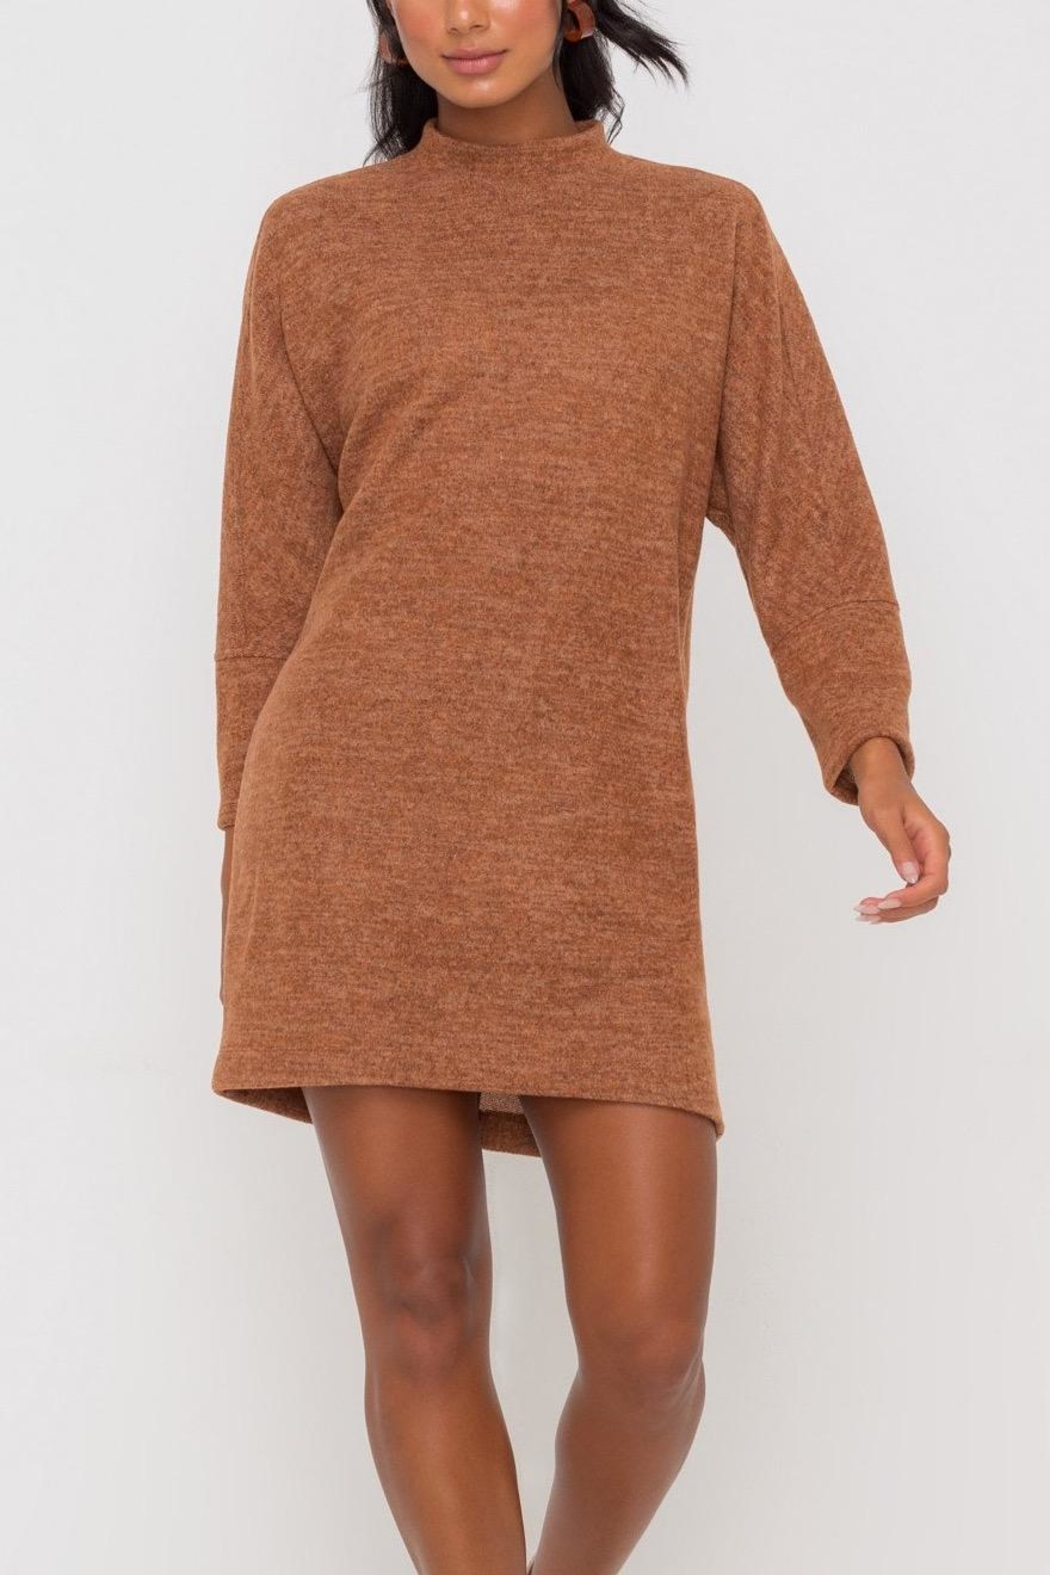 Lush Clothing  Mock-Neck Knit-Dress - Hazel - Back Cropped Image